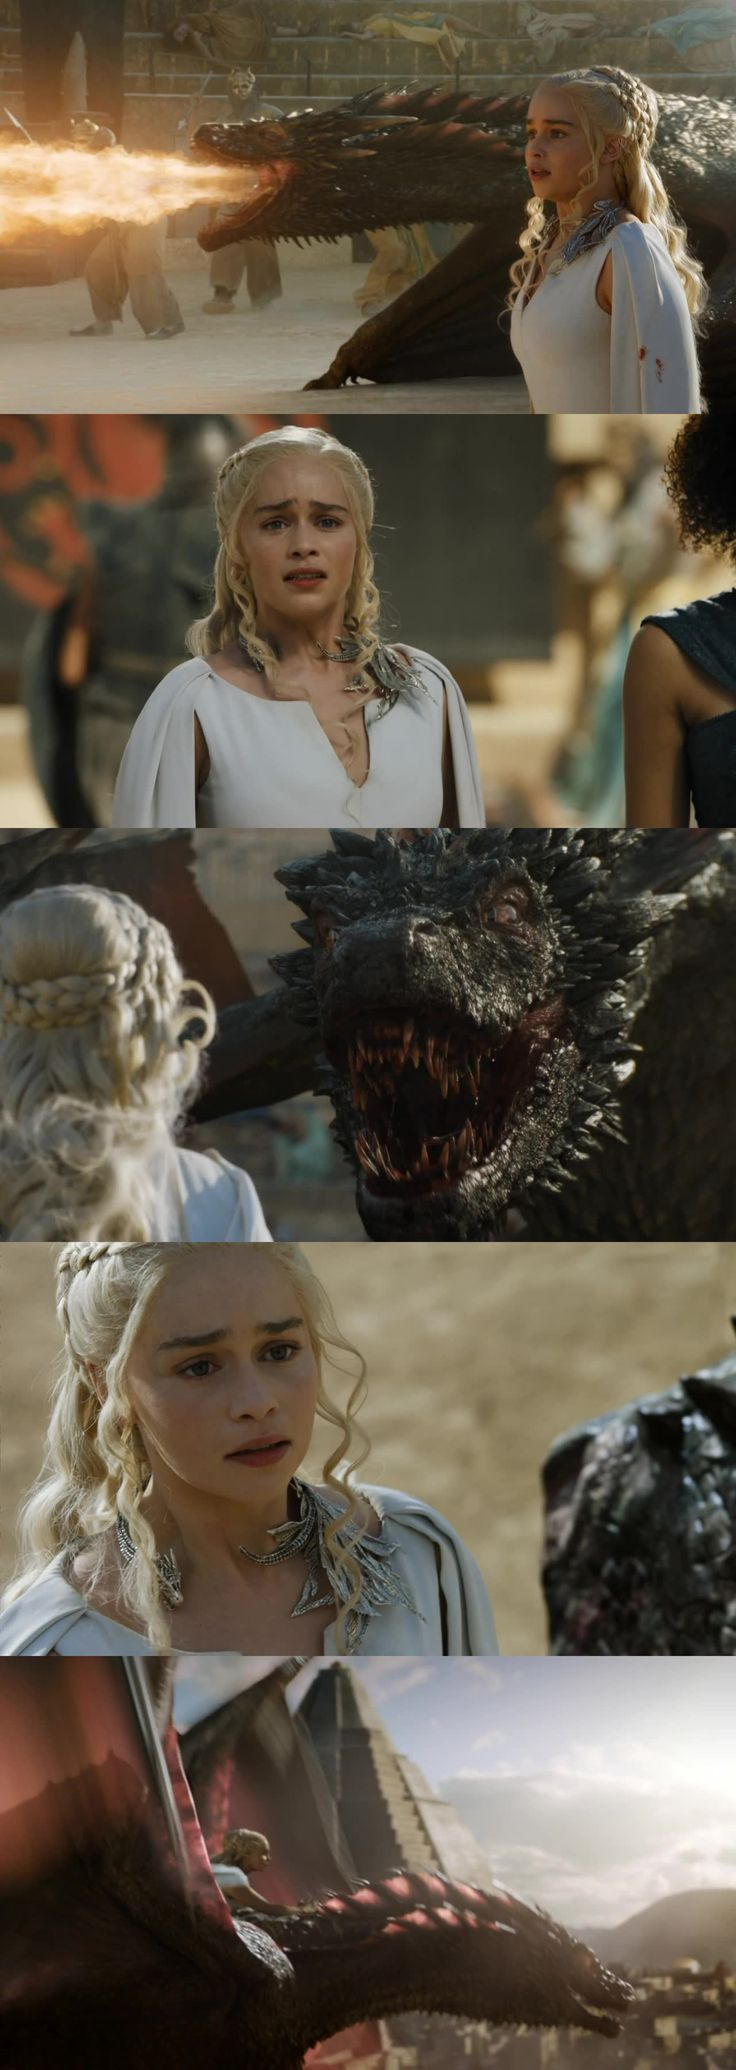 Loved this scene. Completely unforgettable it almost brought me to tears! ~Daenerys Targaryen and Drogon~